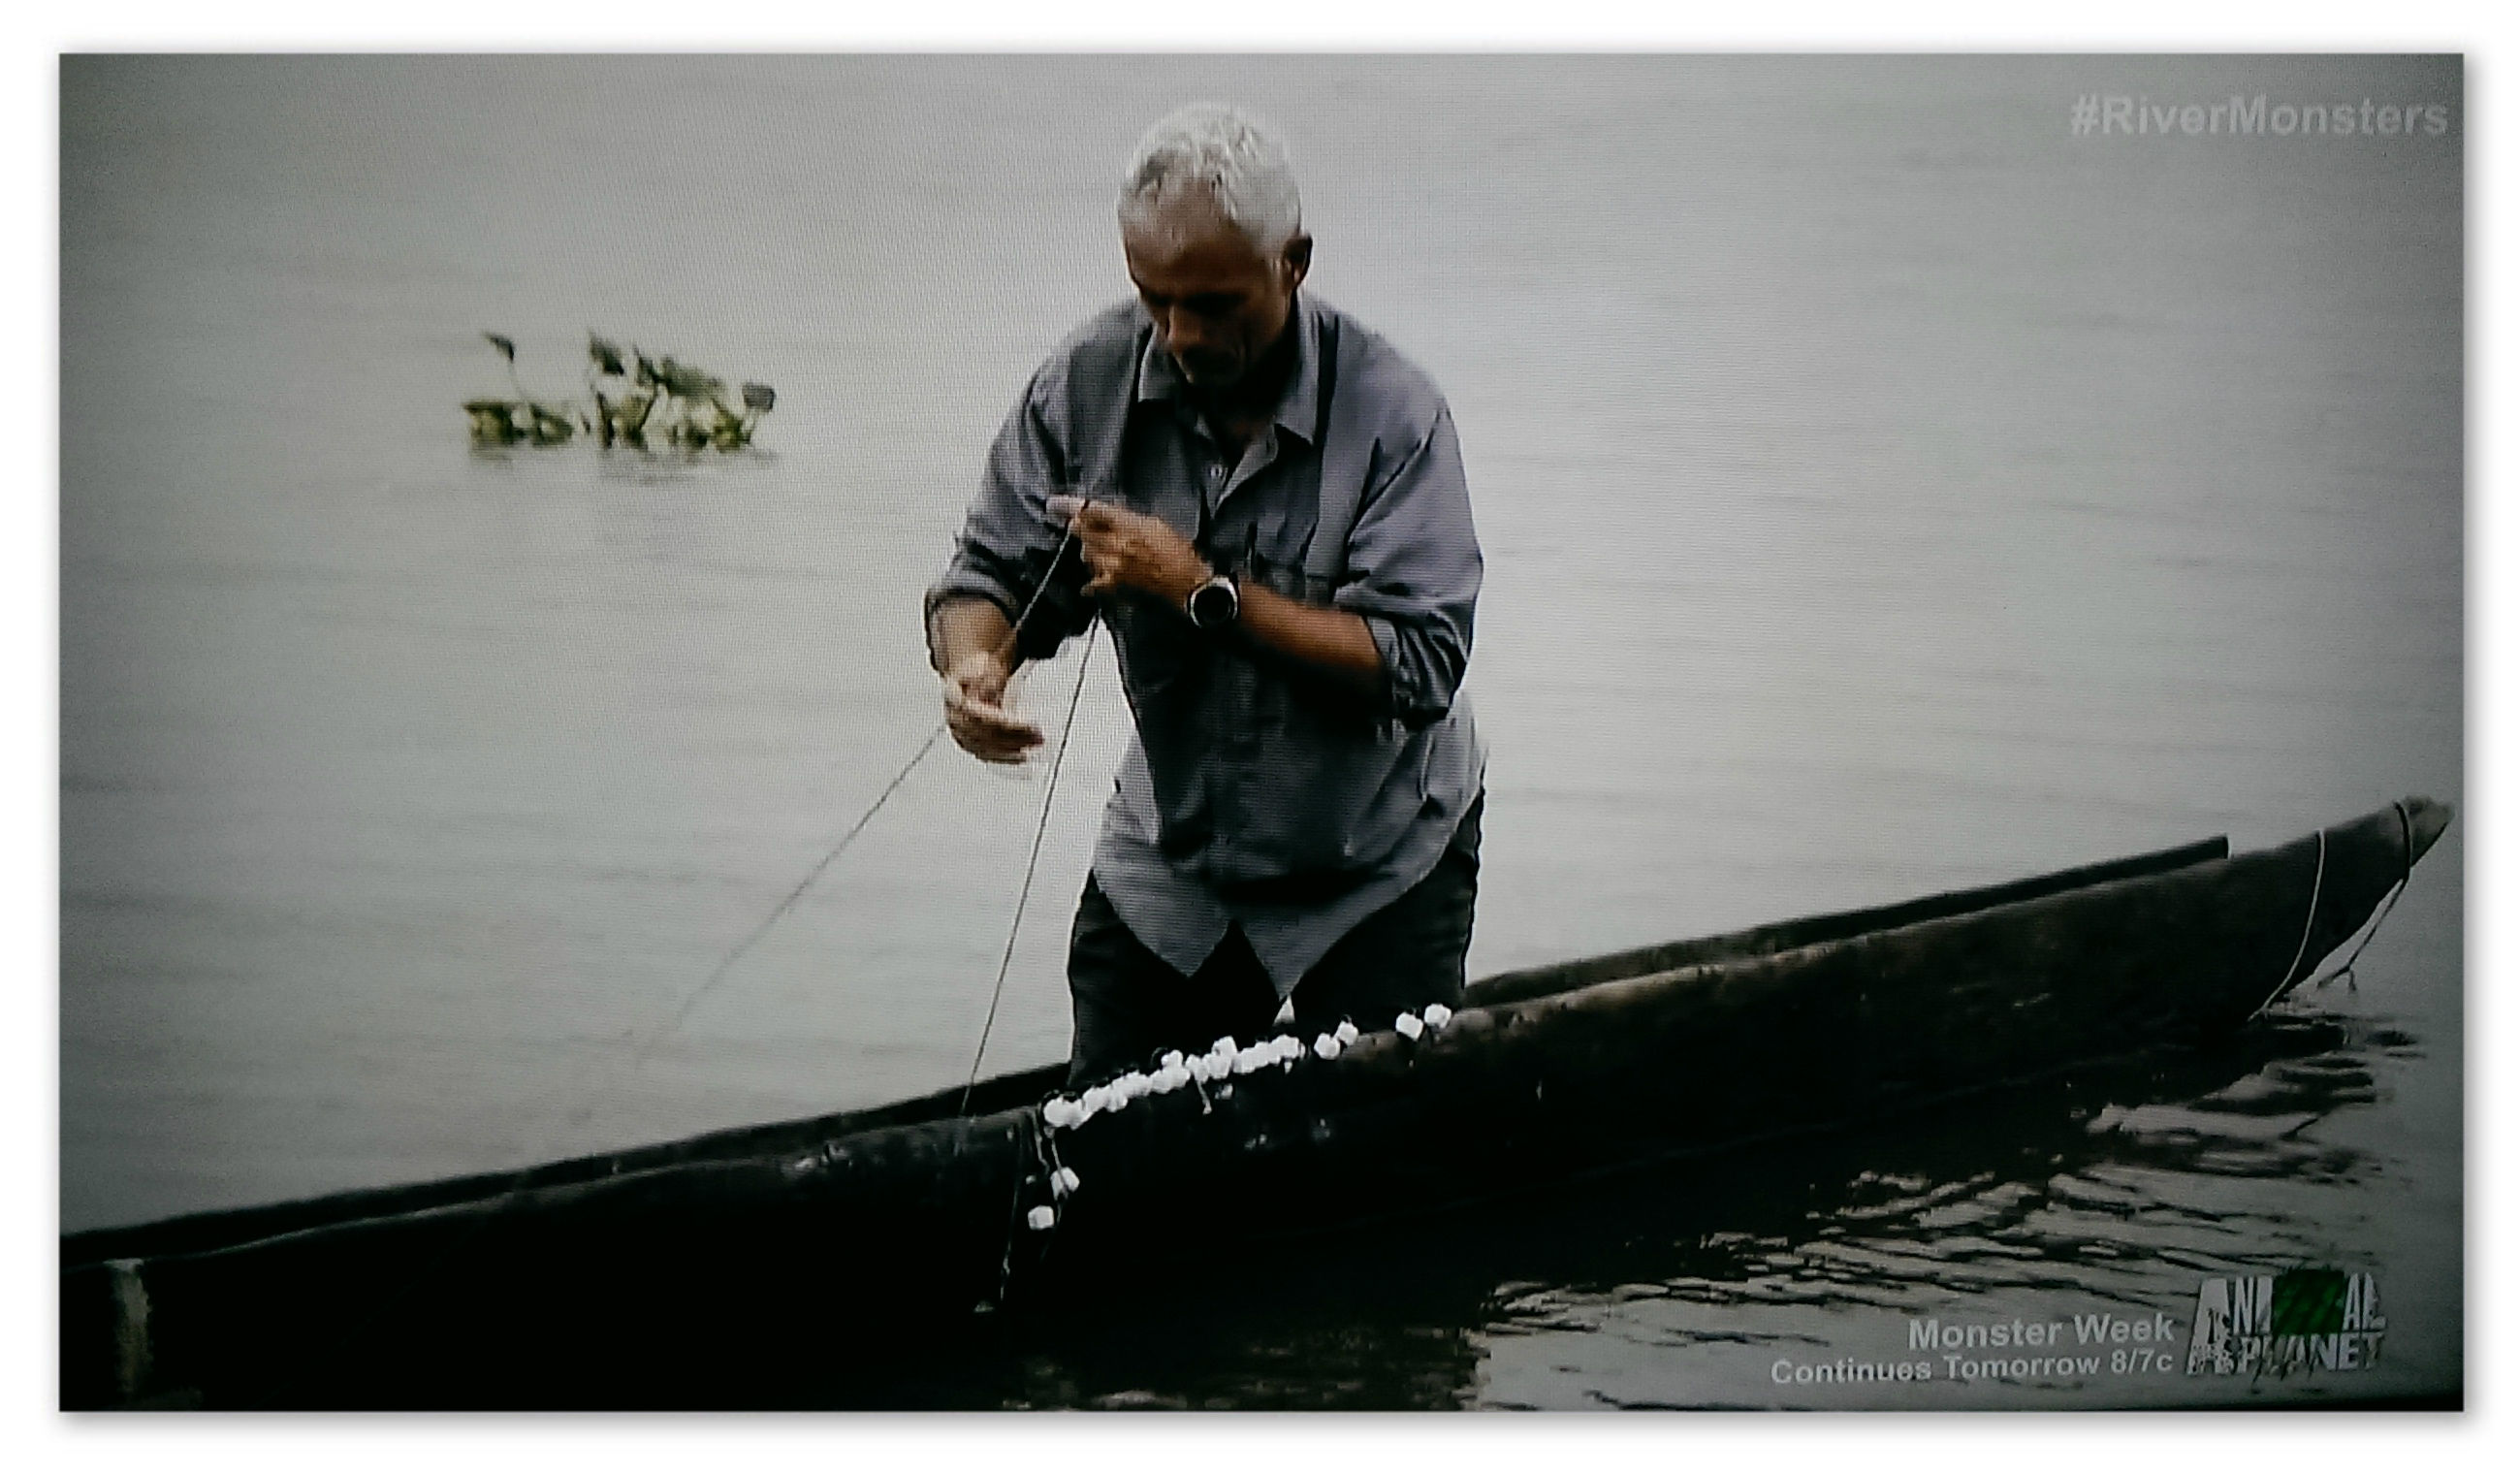 Image of Jeremy Wade fishing with cubes of soap